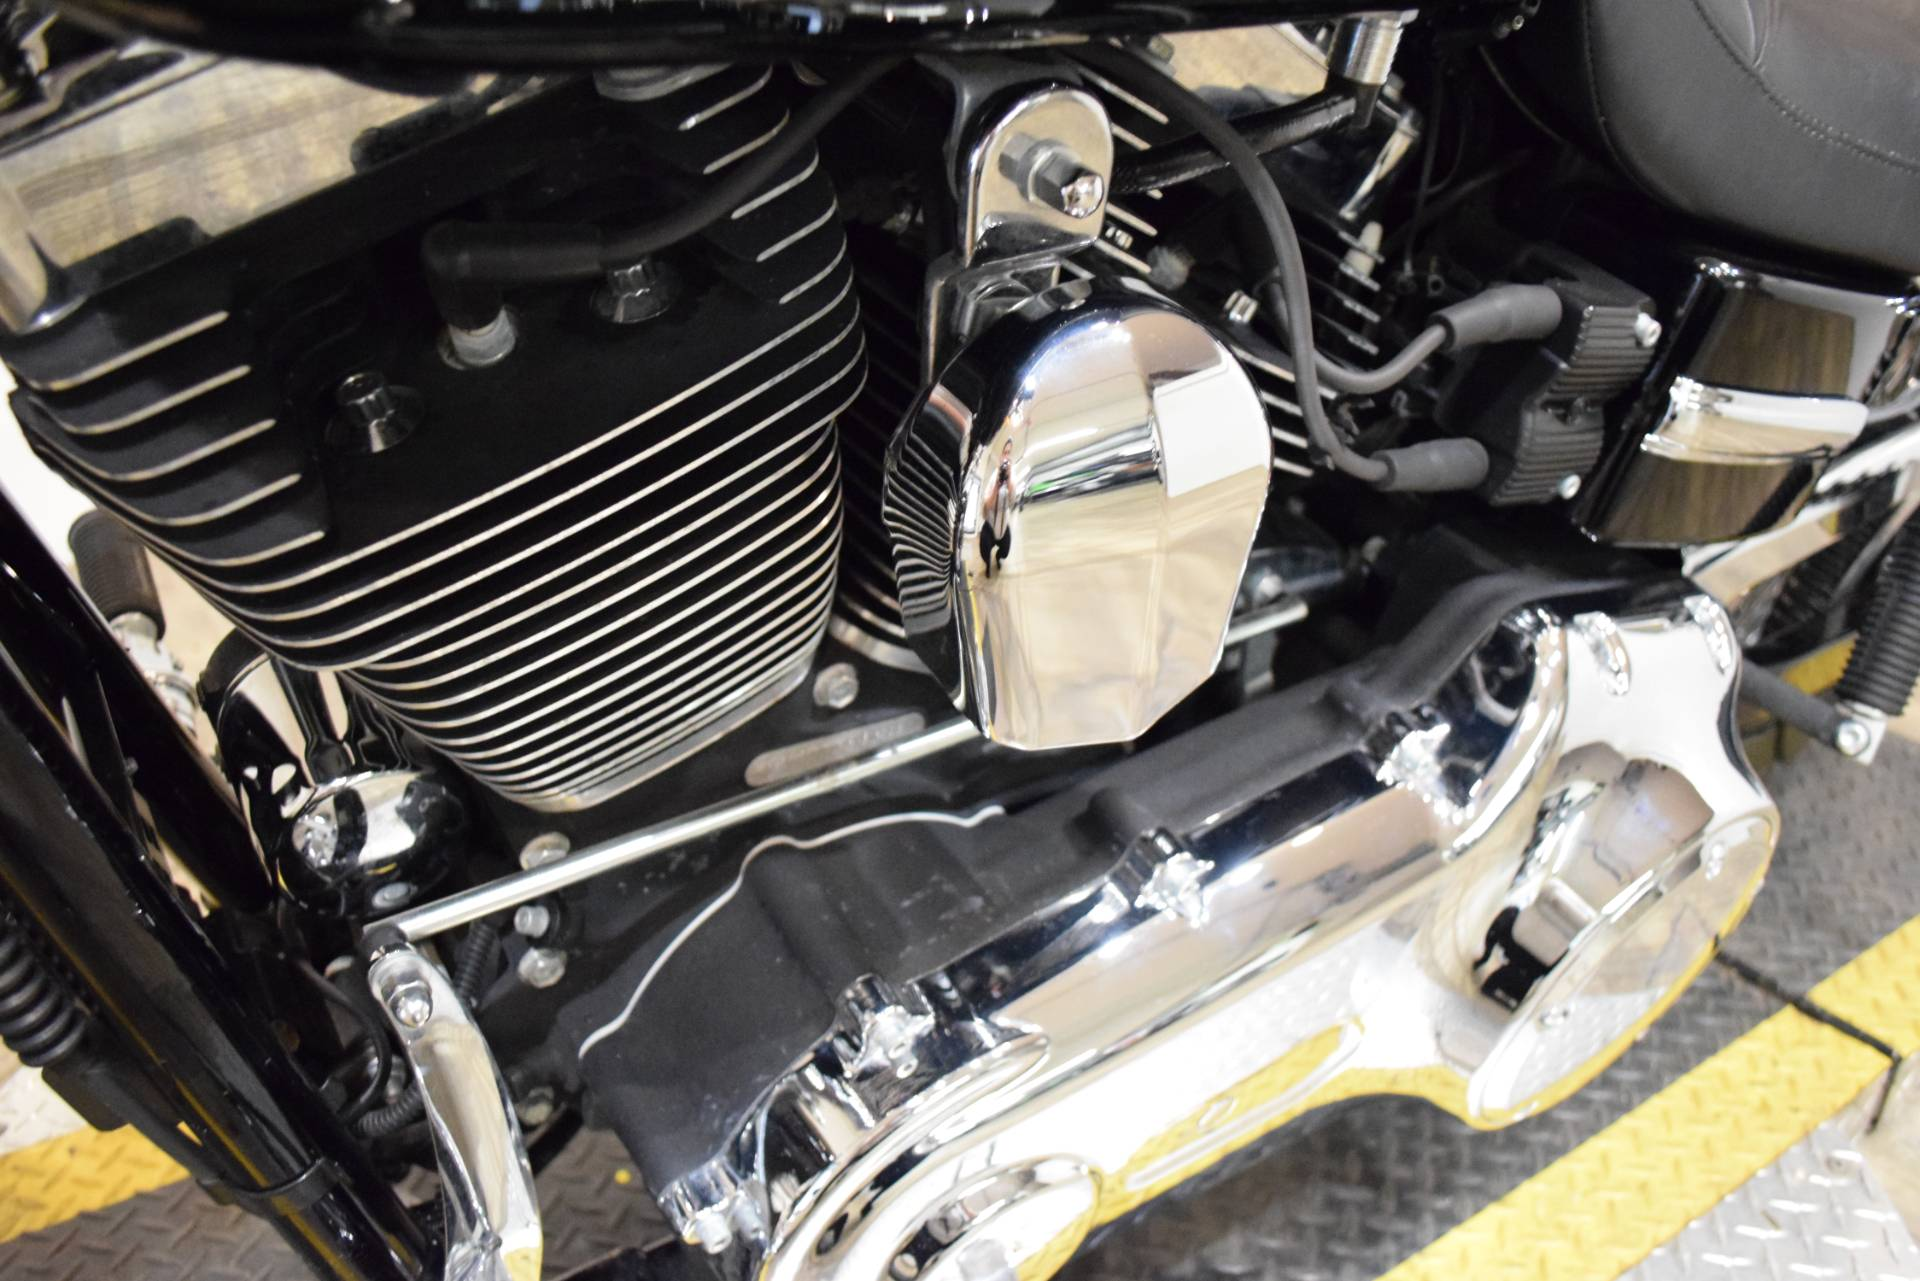 2013 Harley-Davidson Dyna® Super Glide® Custom in Wauconda, Illinois - Photo 19